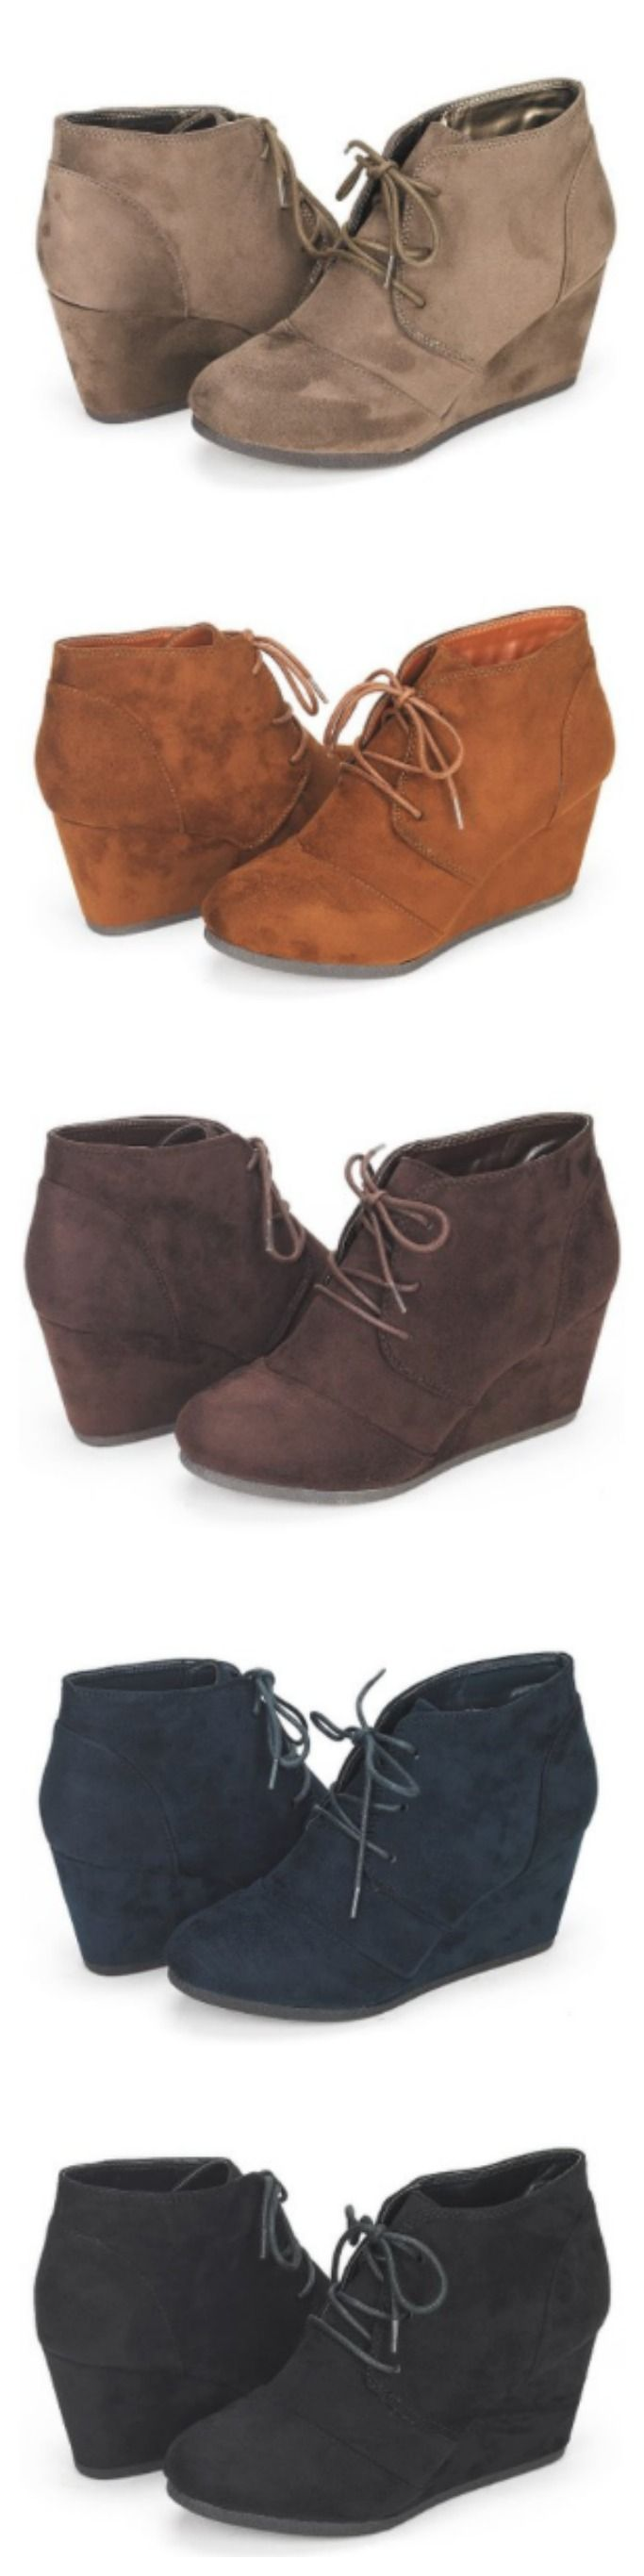 Fall Ankle Boots! We are OBSESSED with ankle boots in the fall! I have these ones and they are super cute, super comfortable, and SUPER reasonably priced! Who doesn't love a good deal?! Makes me want to get another pair in a different color! {aff}